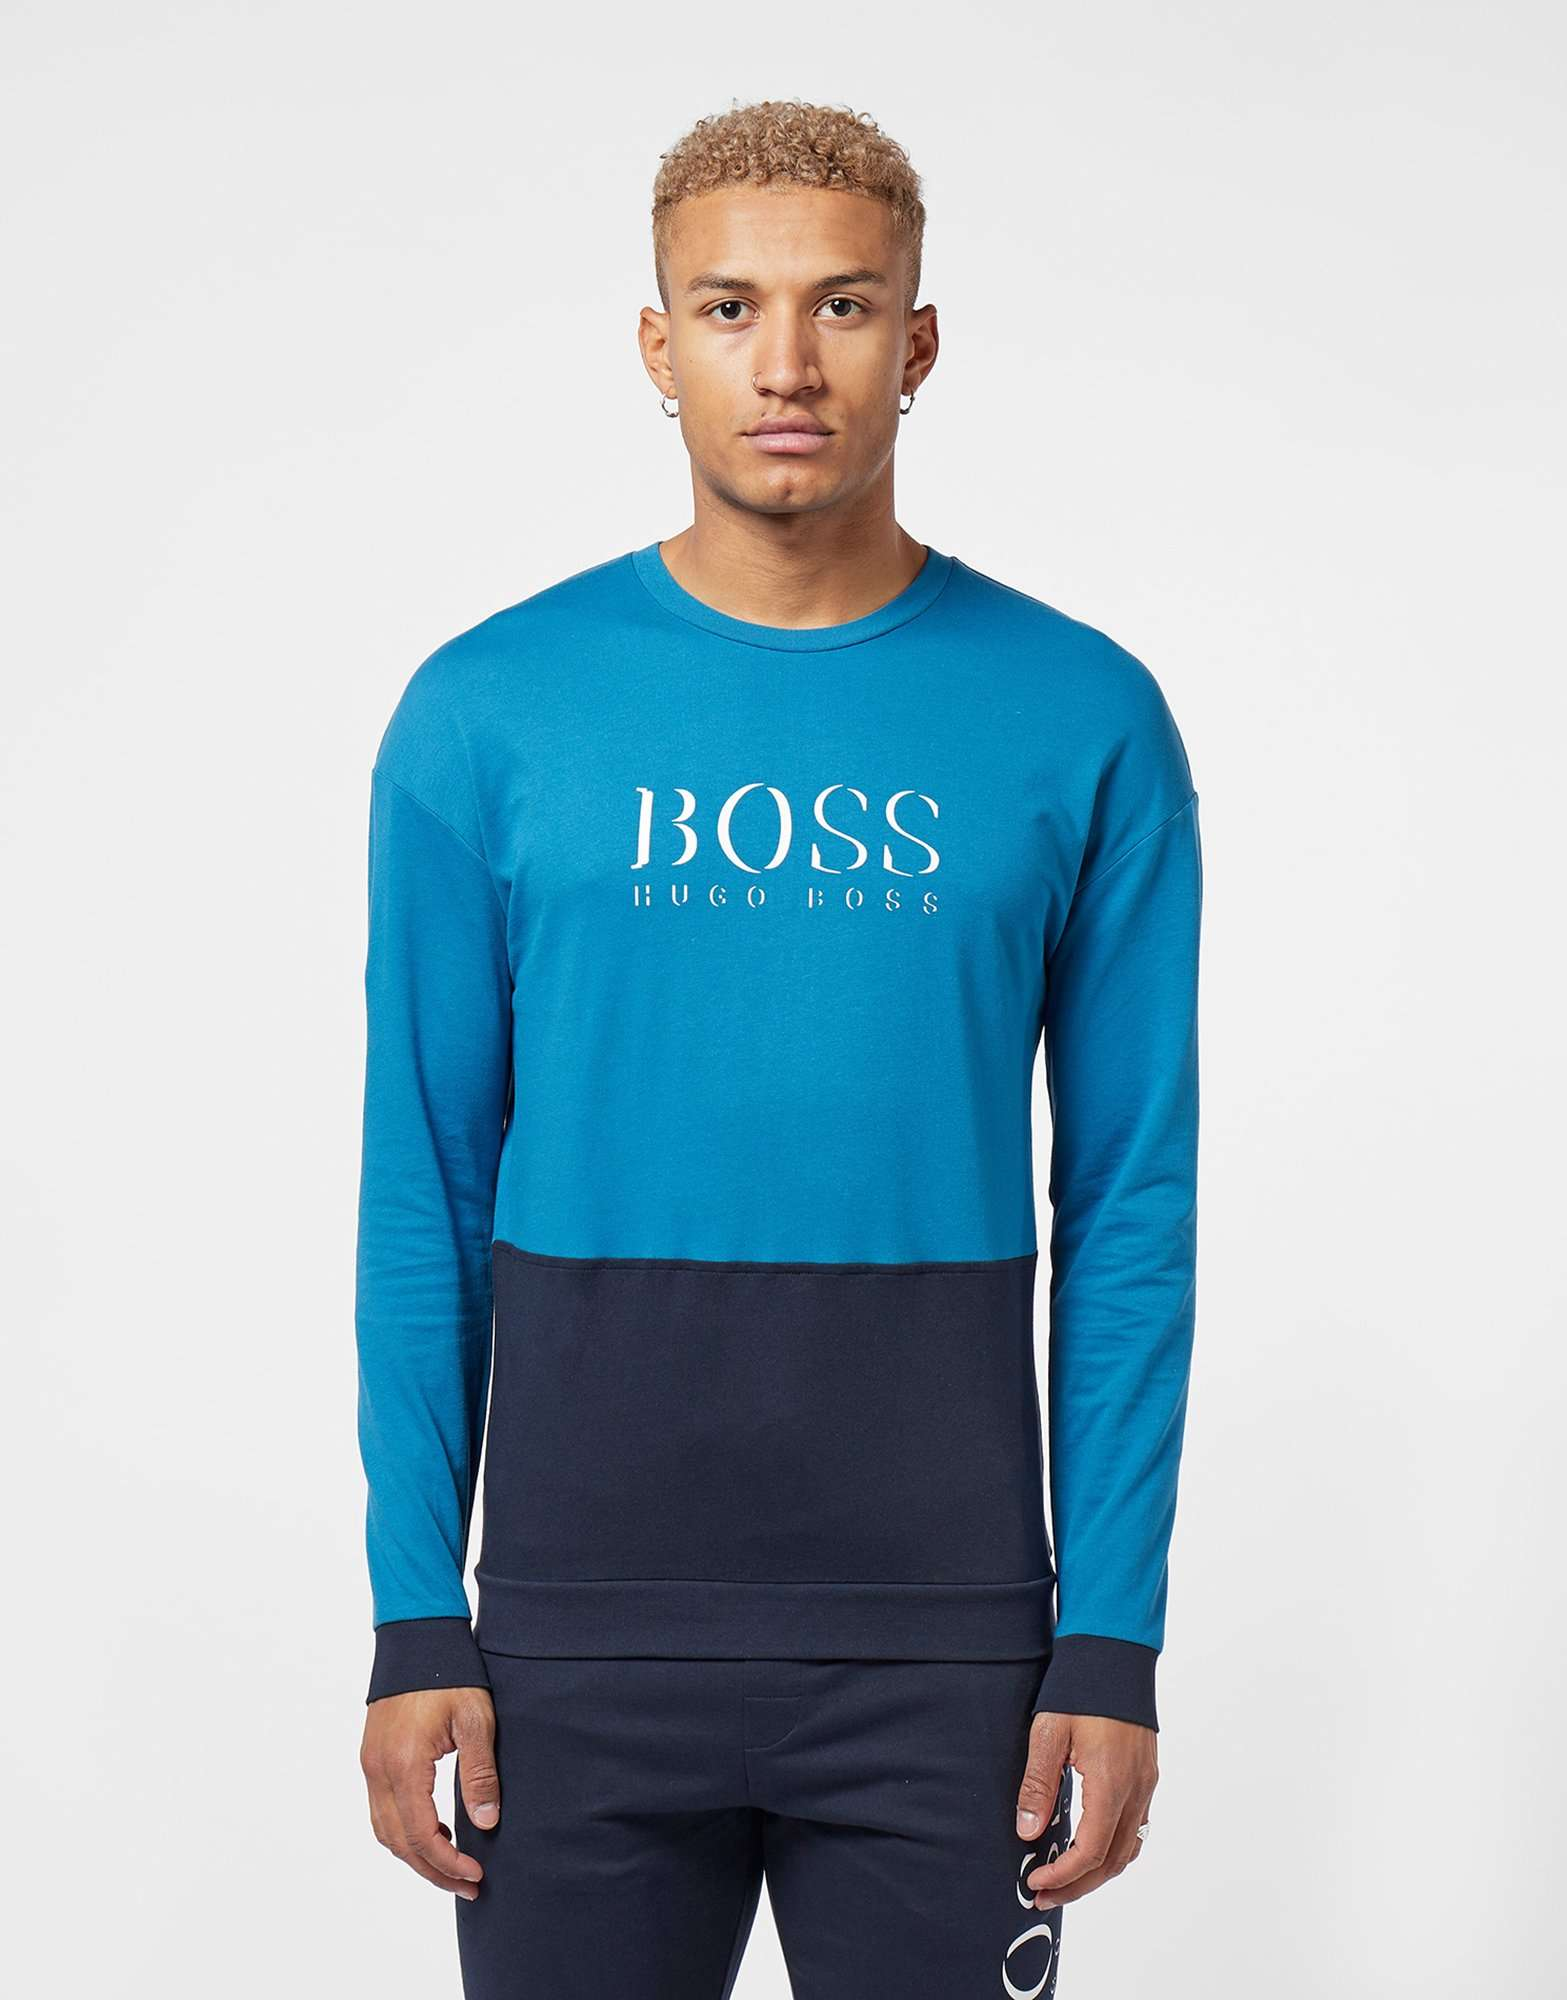 BOSS Authentic Split Sweatshirt